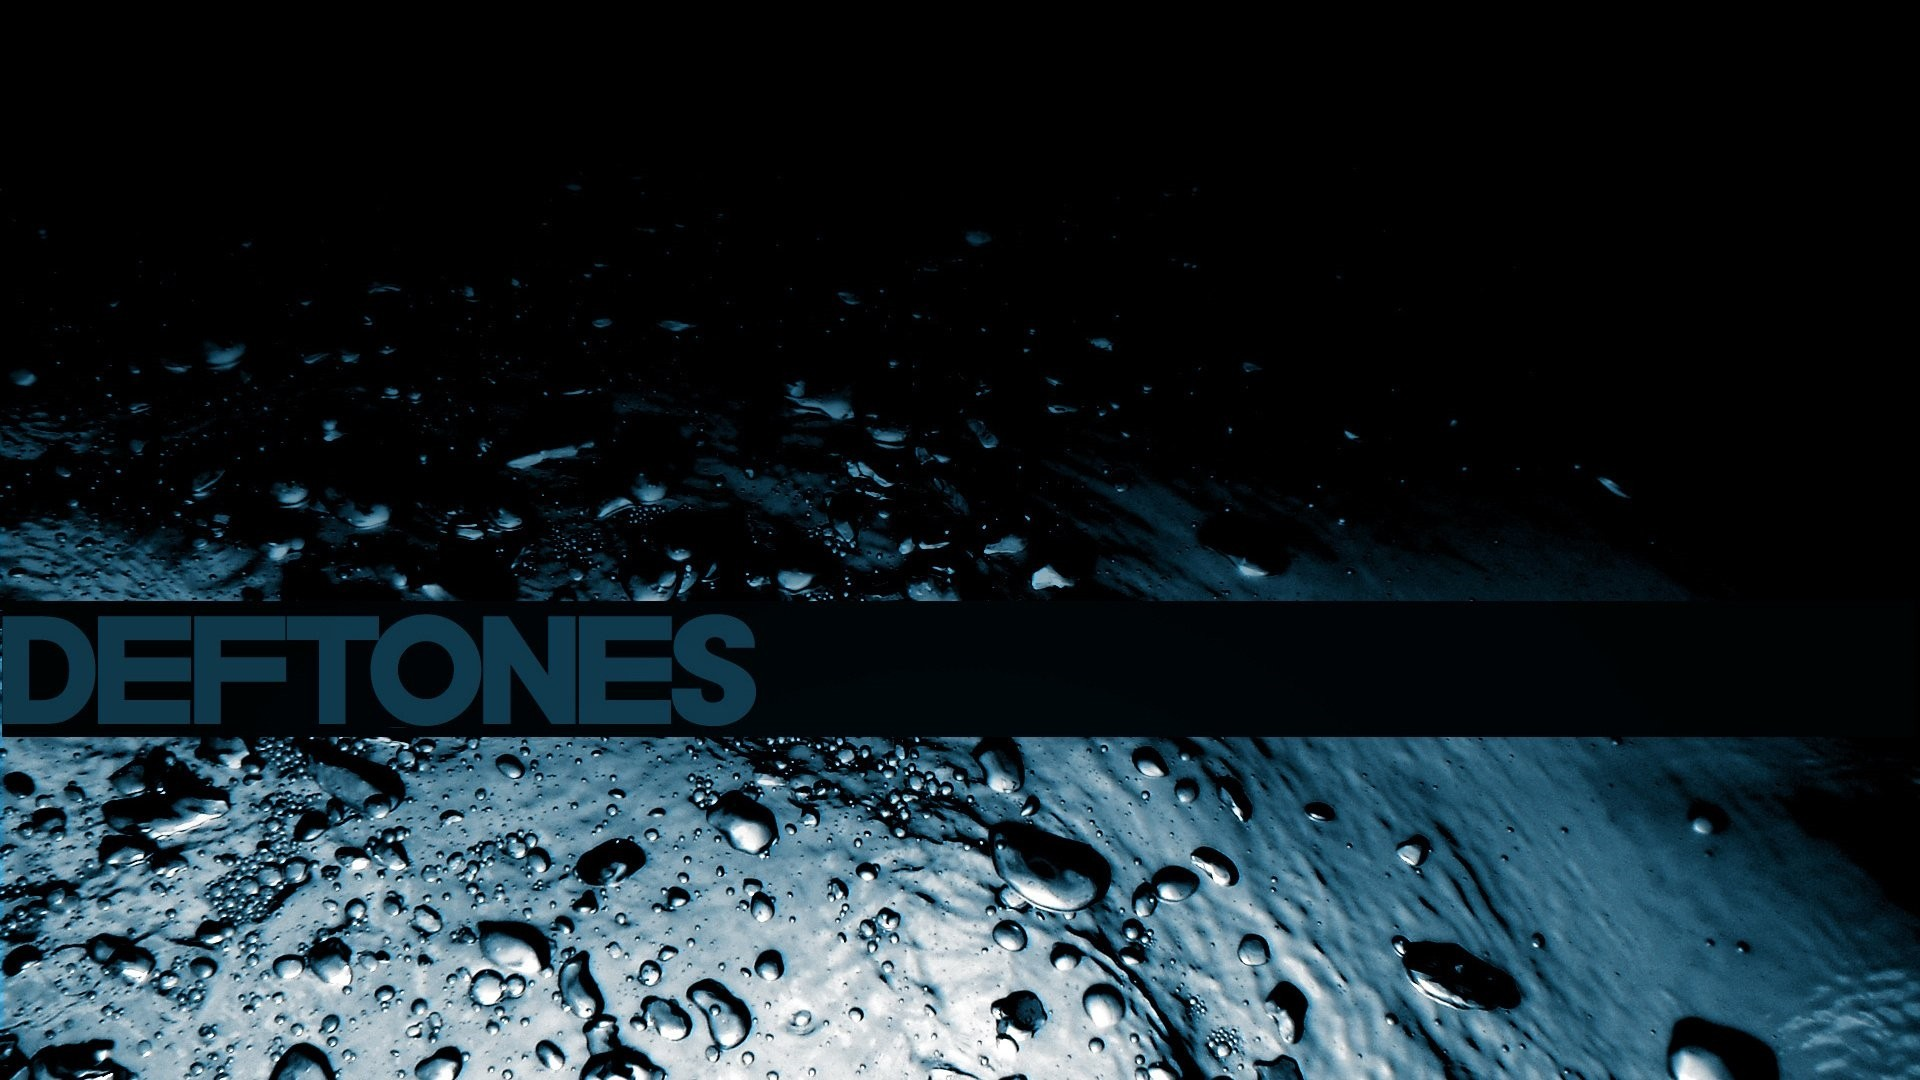 Deftones HD Download